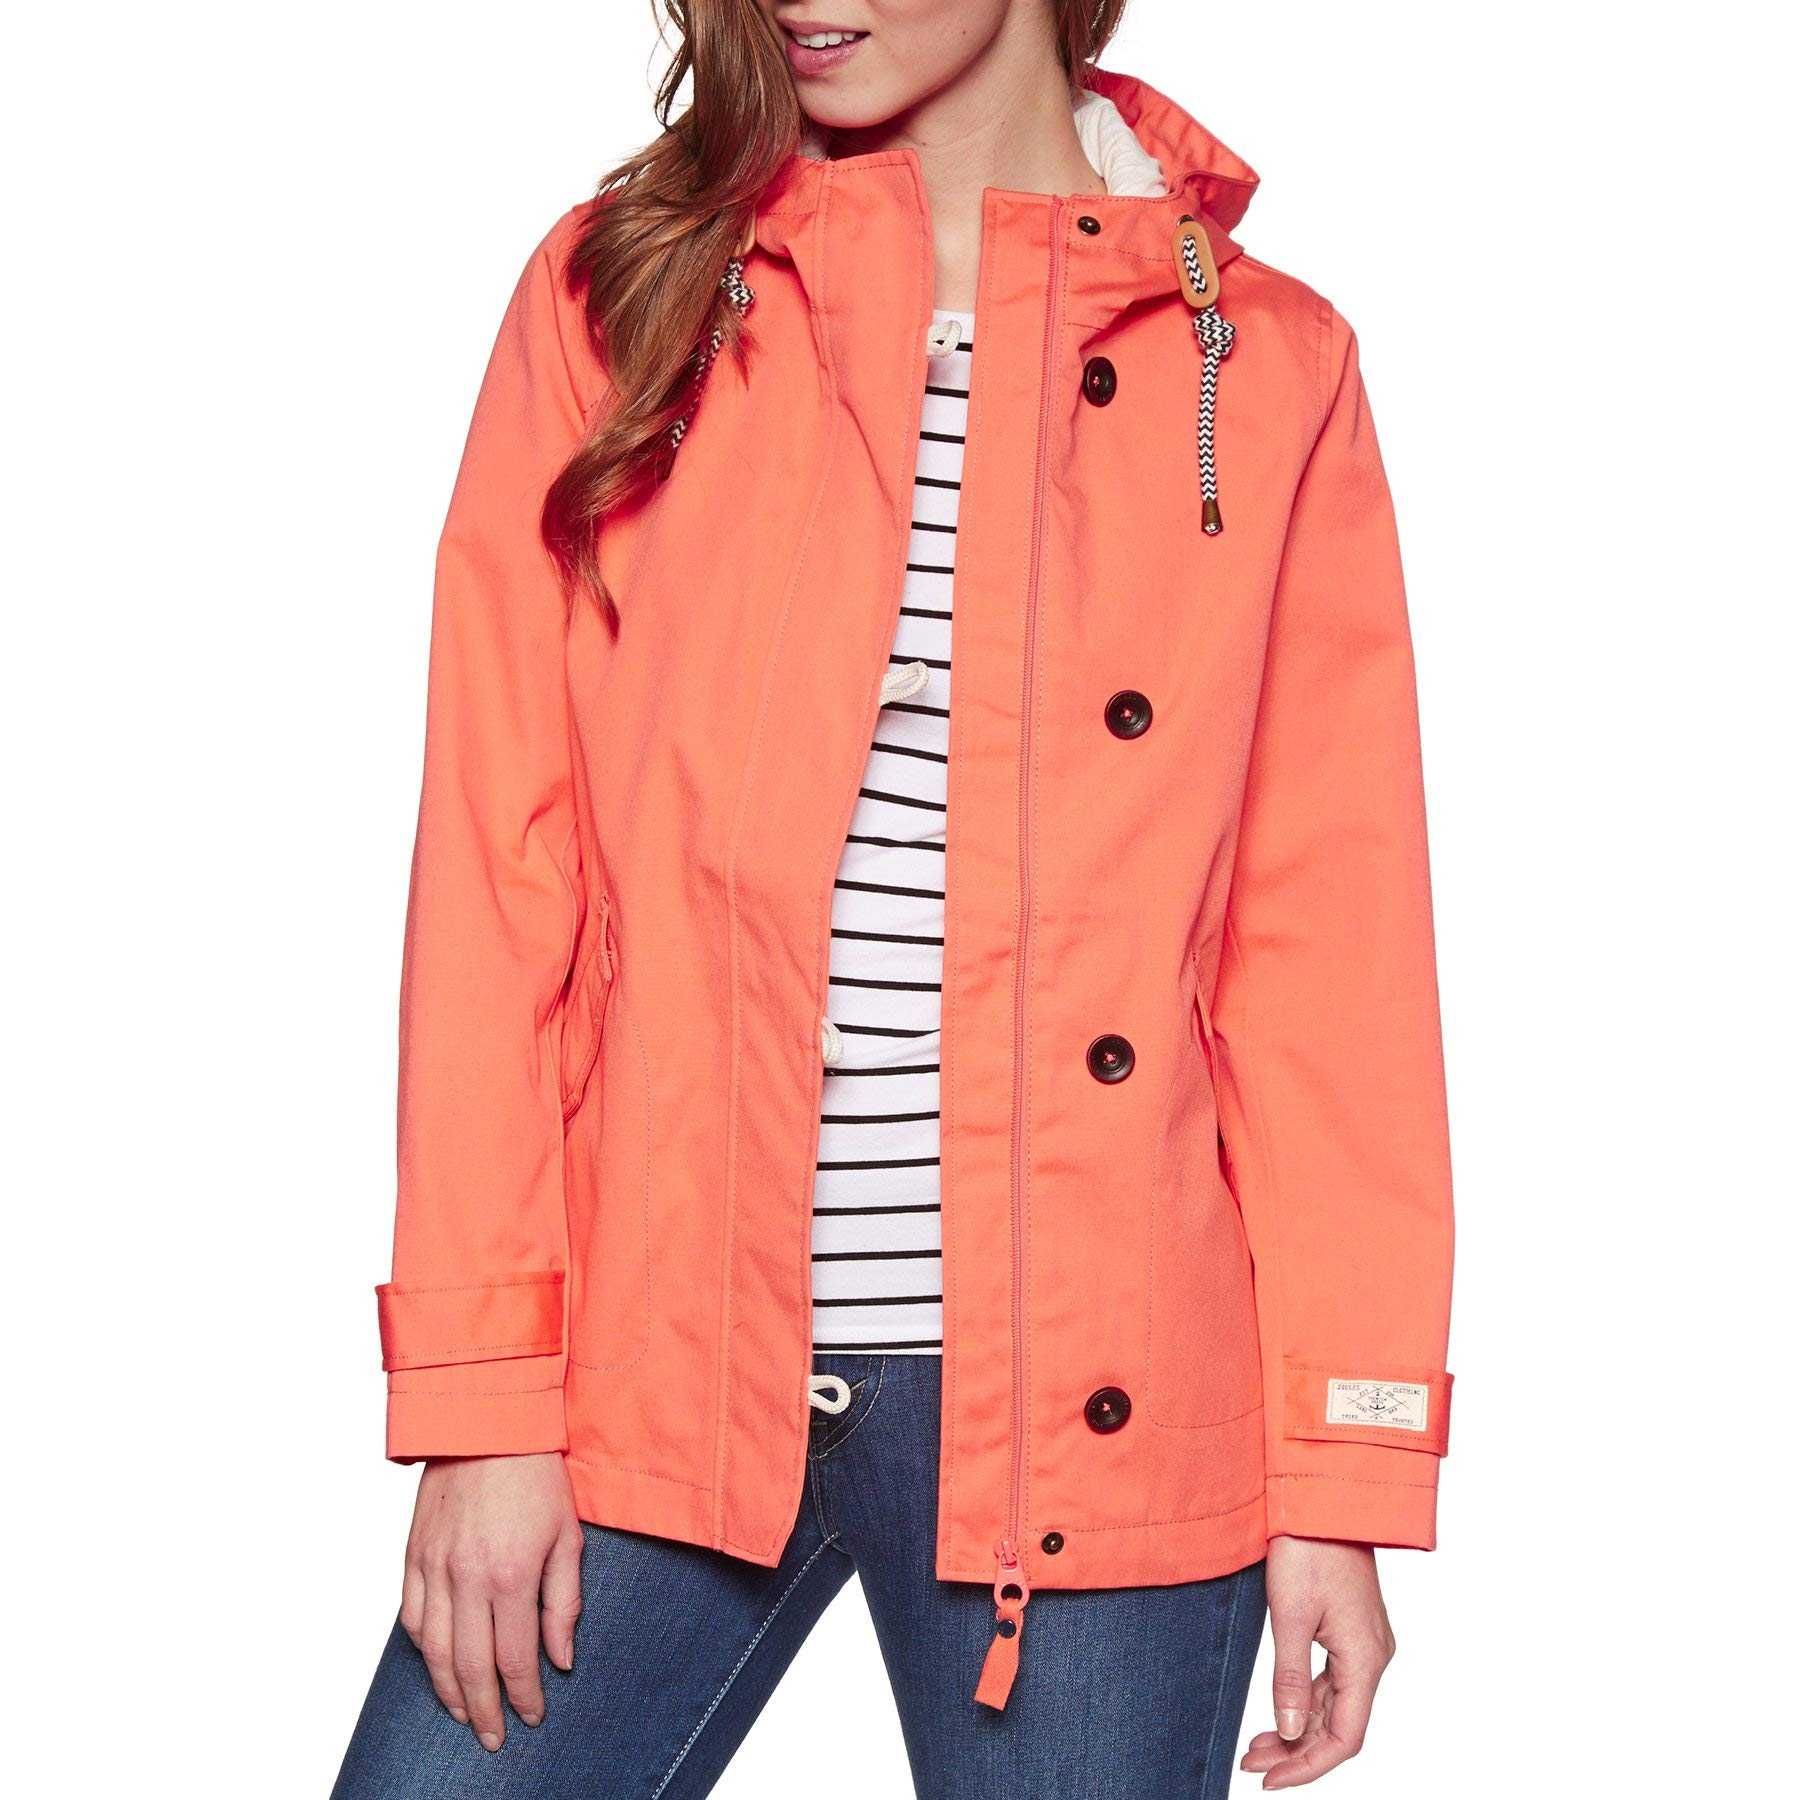 Joules, Coasted Hooded Jacket, Burnt Coral, 4